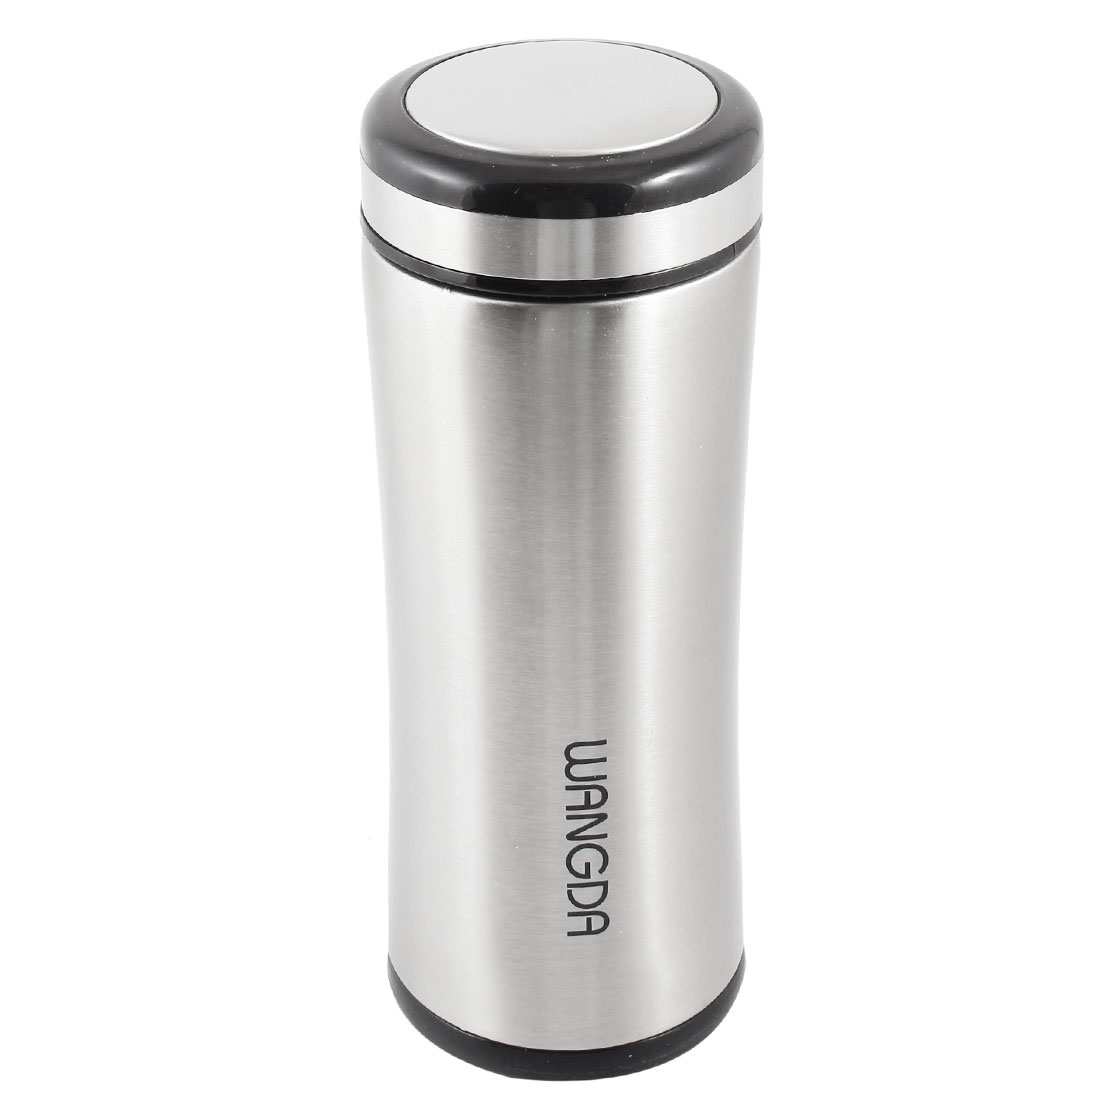 Silver Tone Stainless Steel Travel Drink Cup Vacuum Water Bottle 500ml